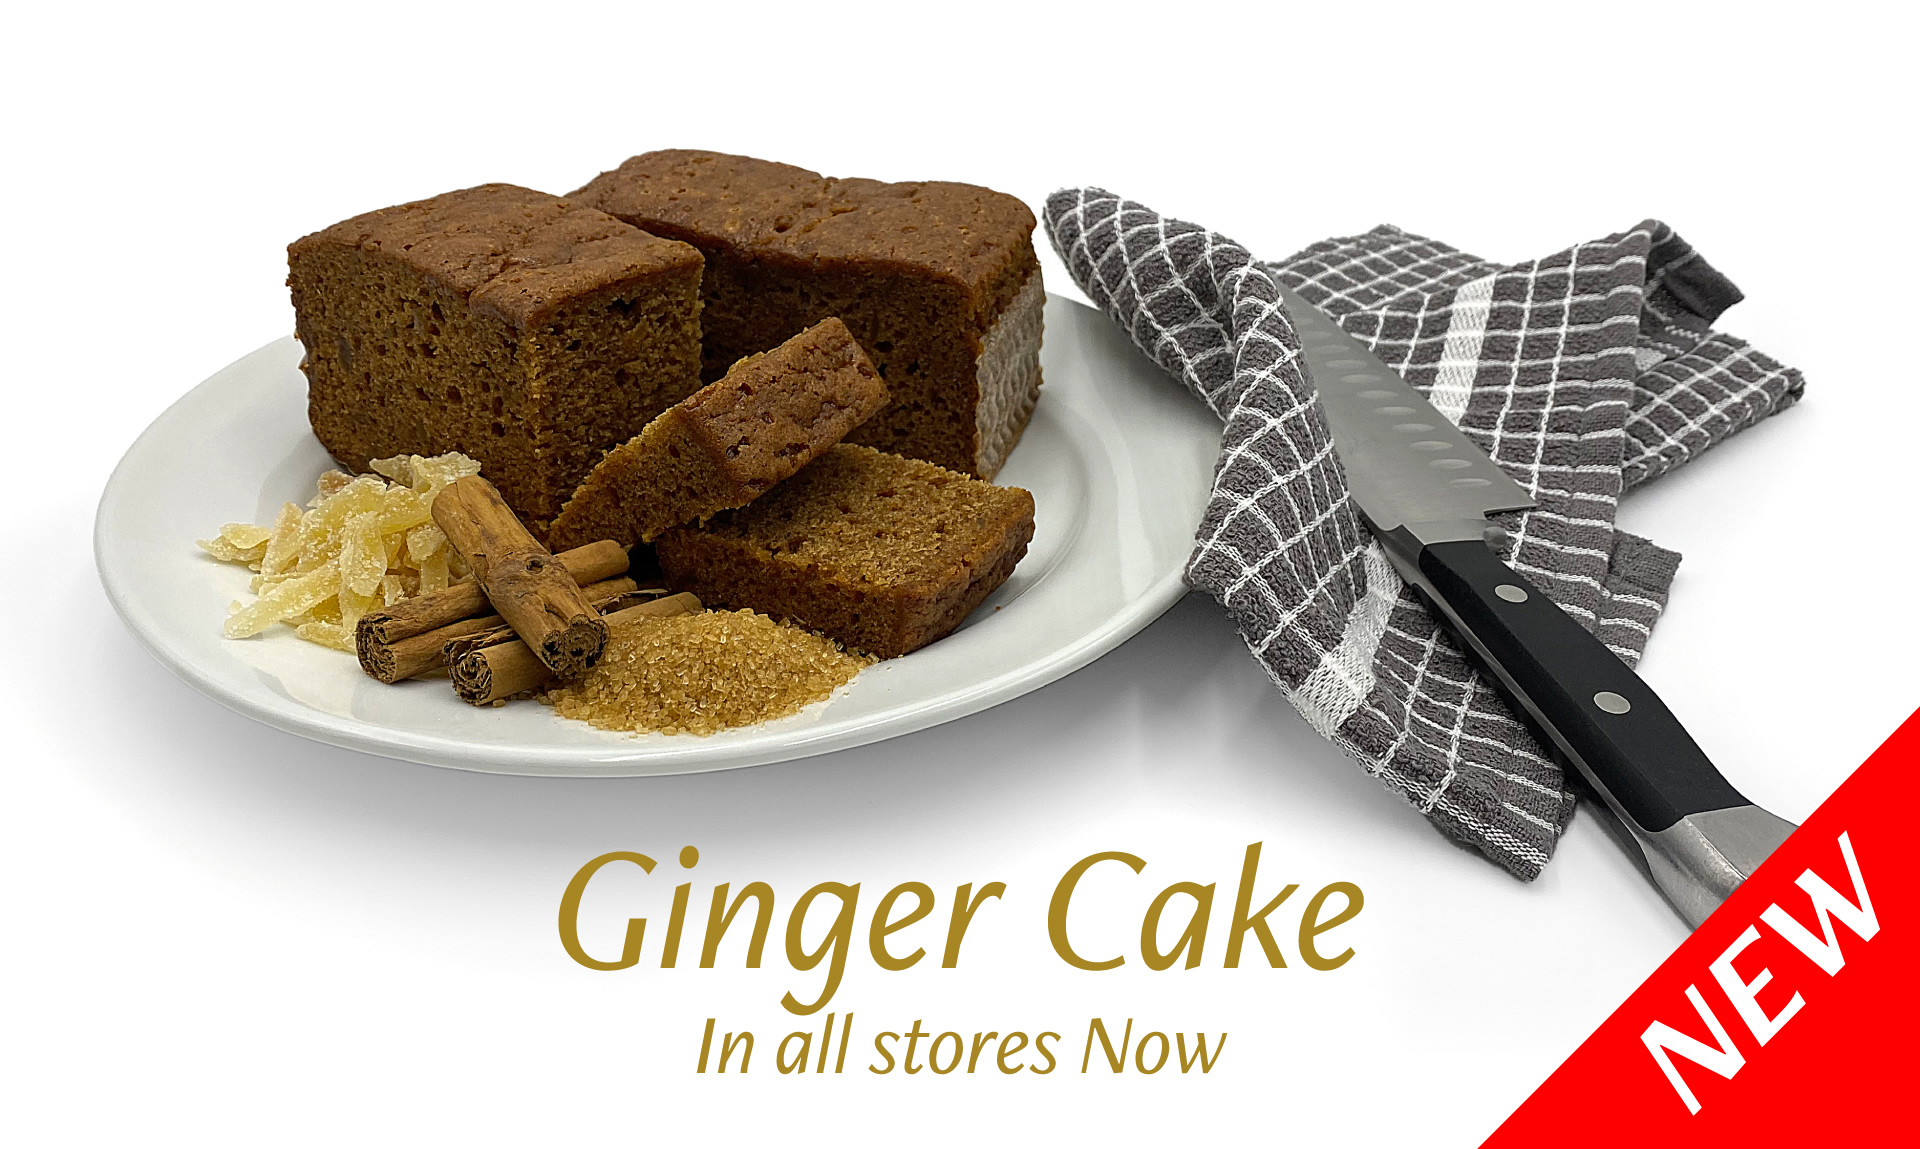 New Ginger Cake in all stores now